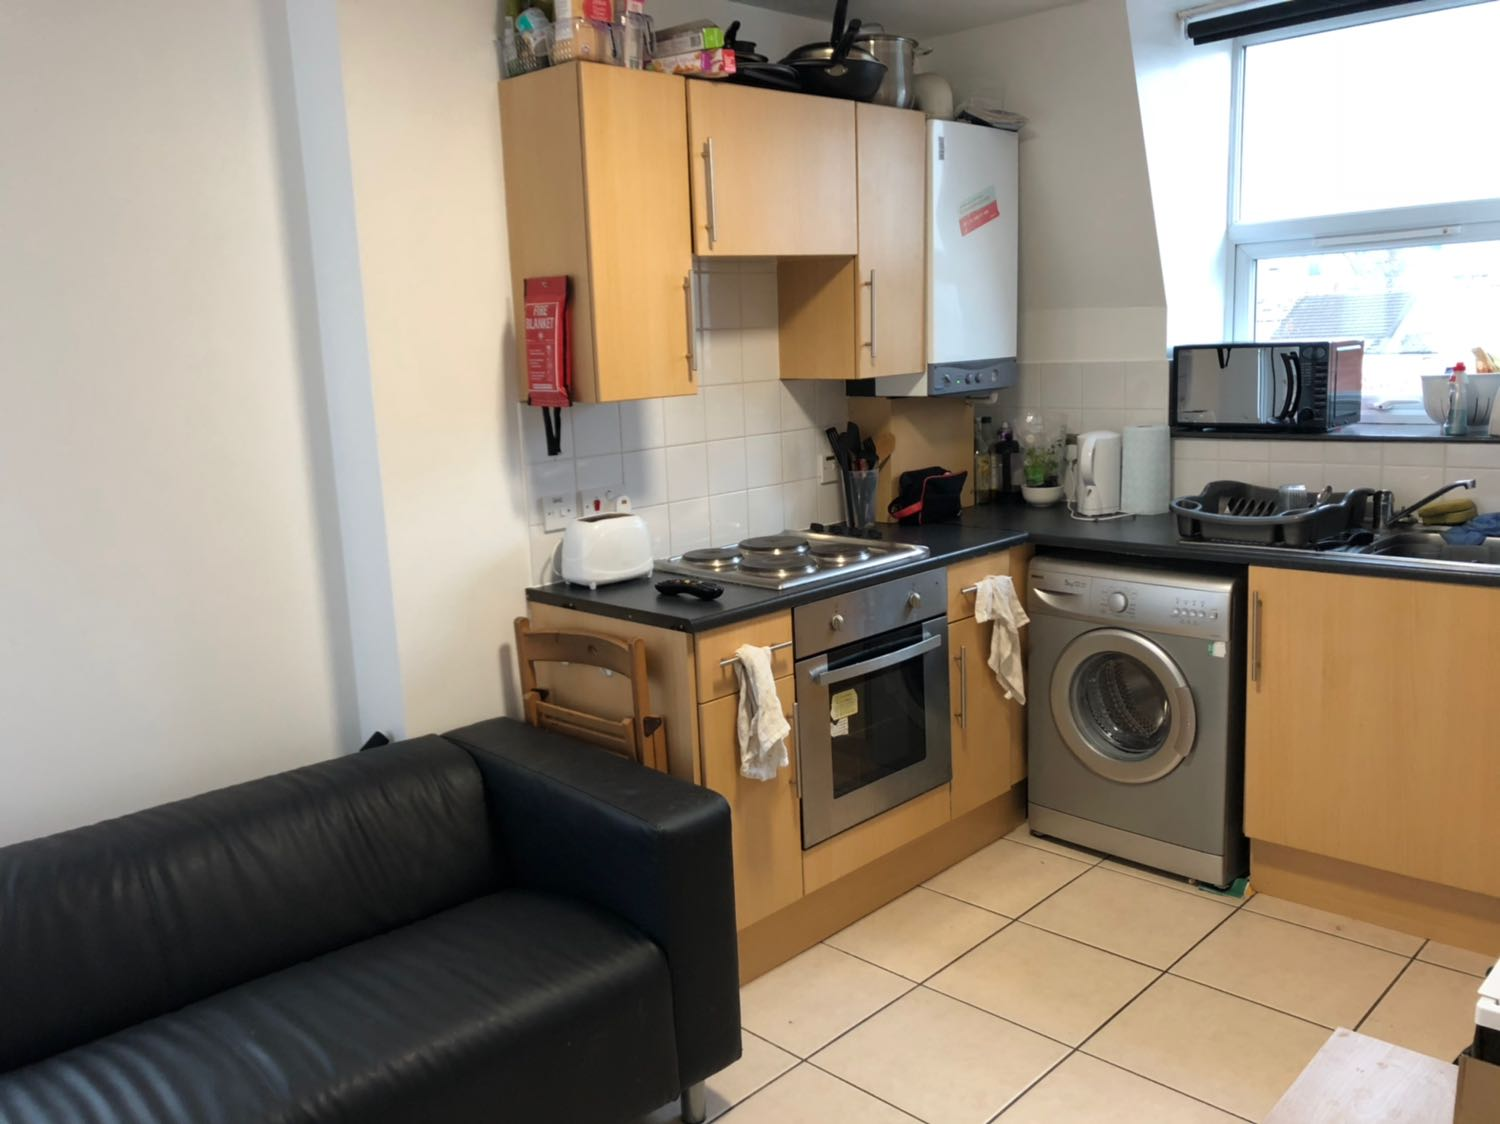 Flat 1 The Rayner Building – 2 Bed